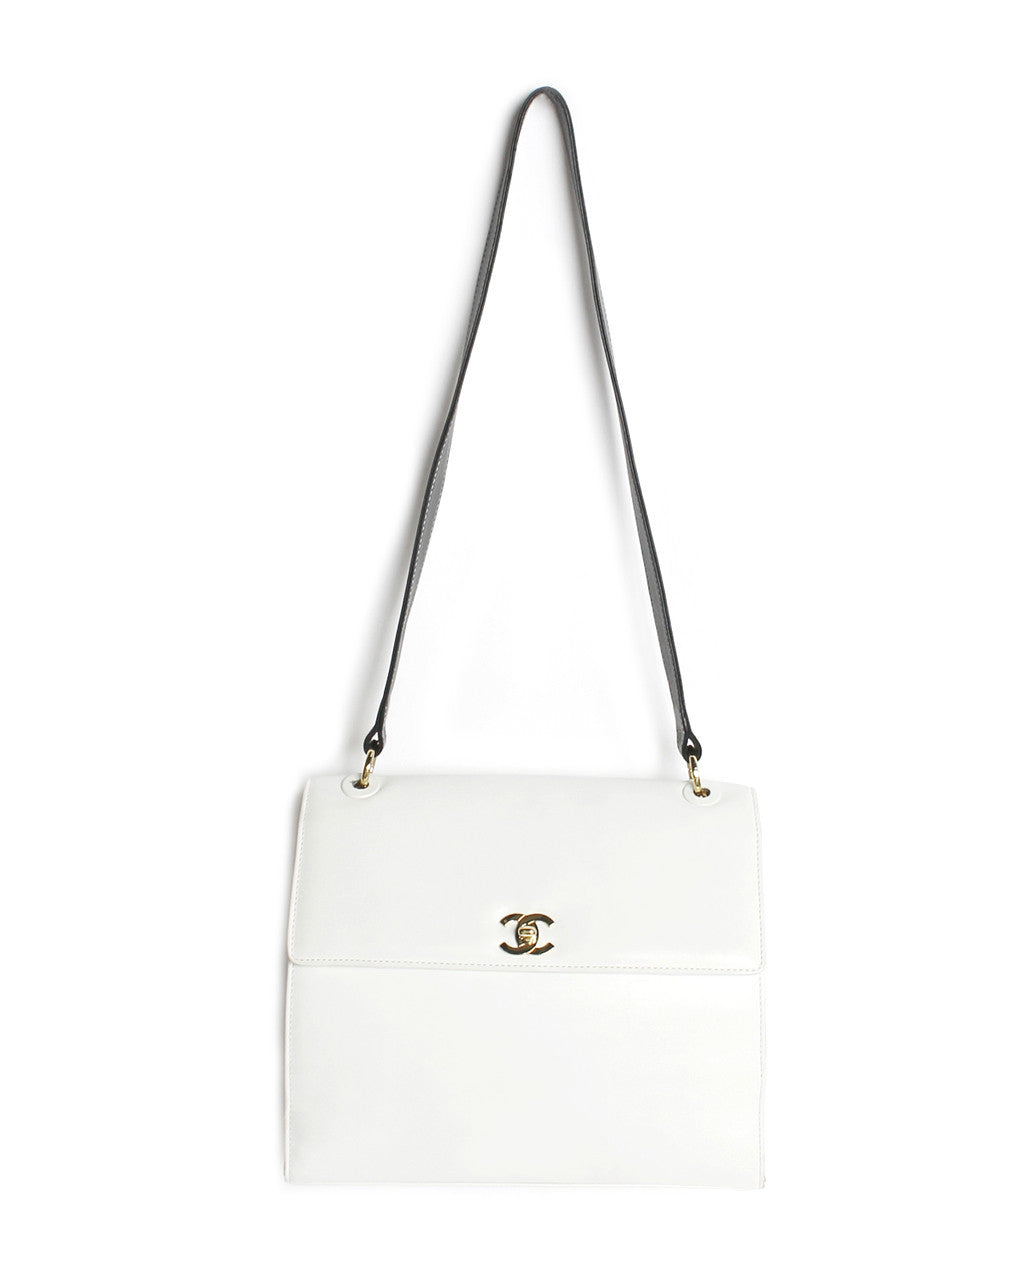 Chanel White & Black Leather Shoulder Purse - C.Madeleine's